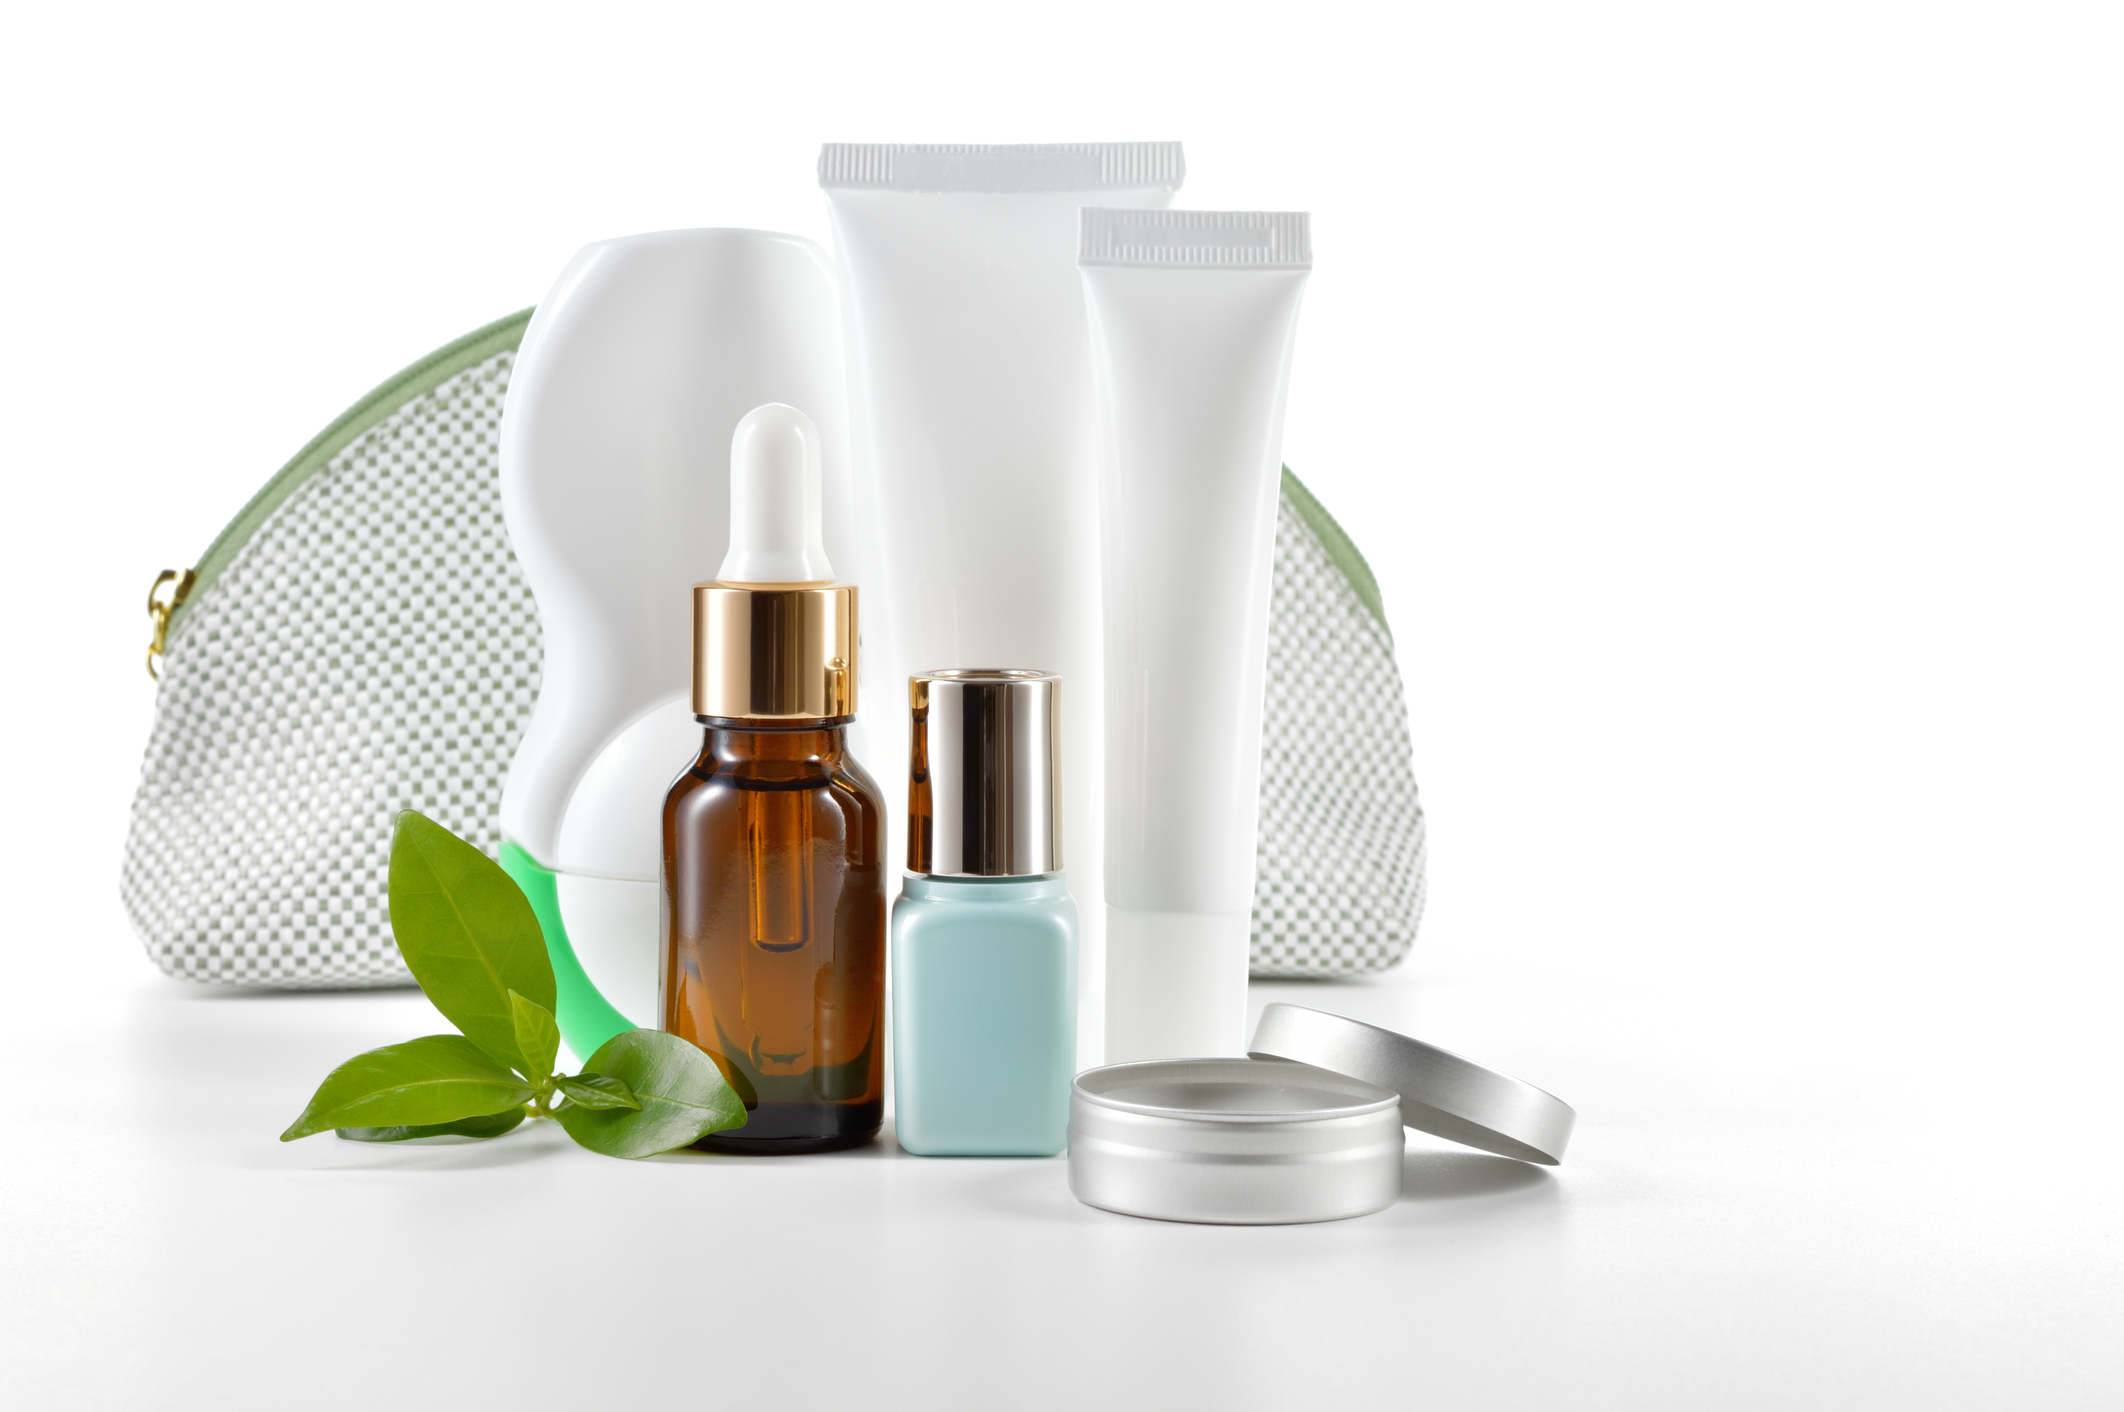 products for skin care with a leaf representing all natural ingredients